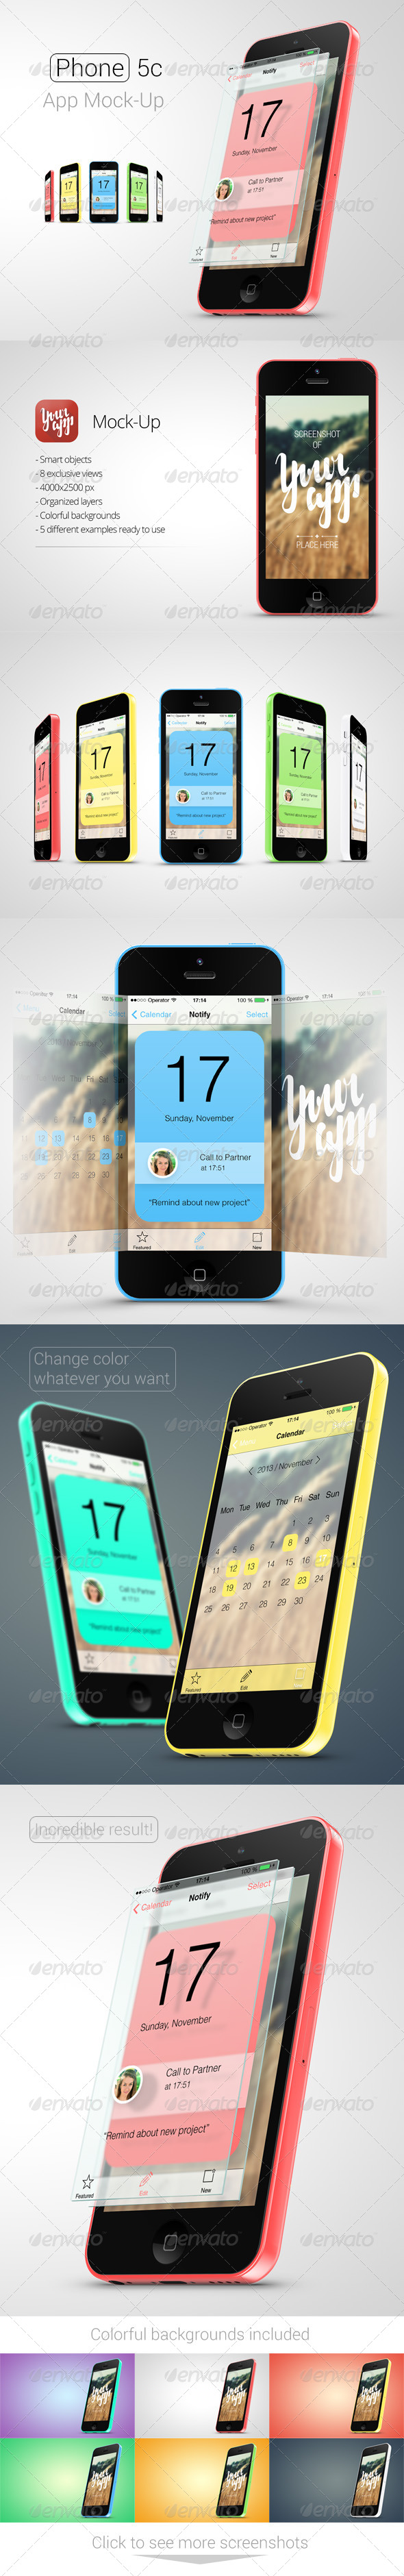 Phone 5c App Mock-Up - Mobile Displays